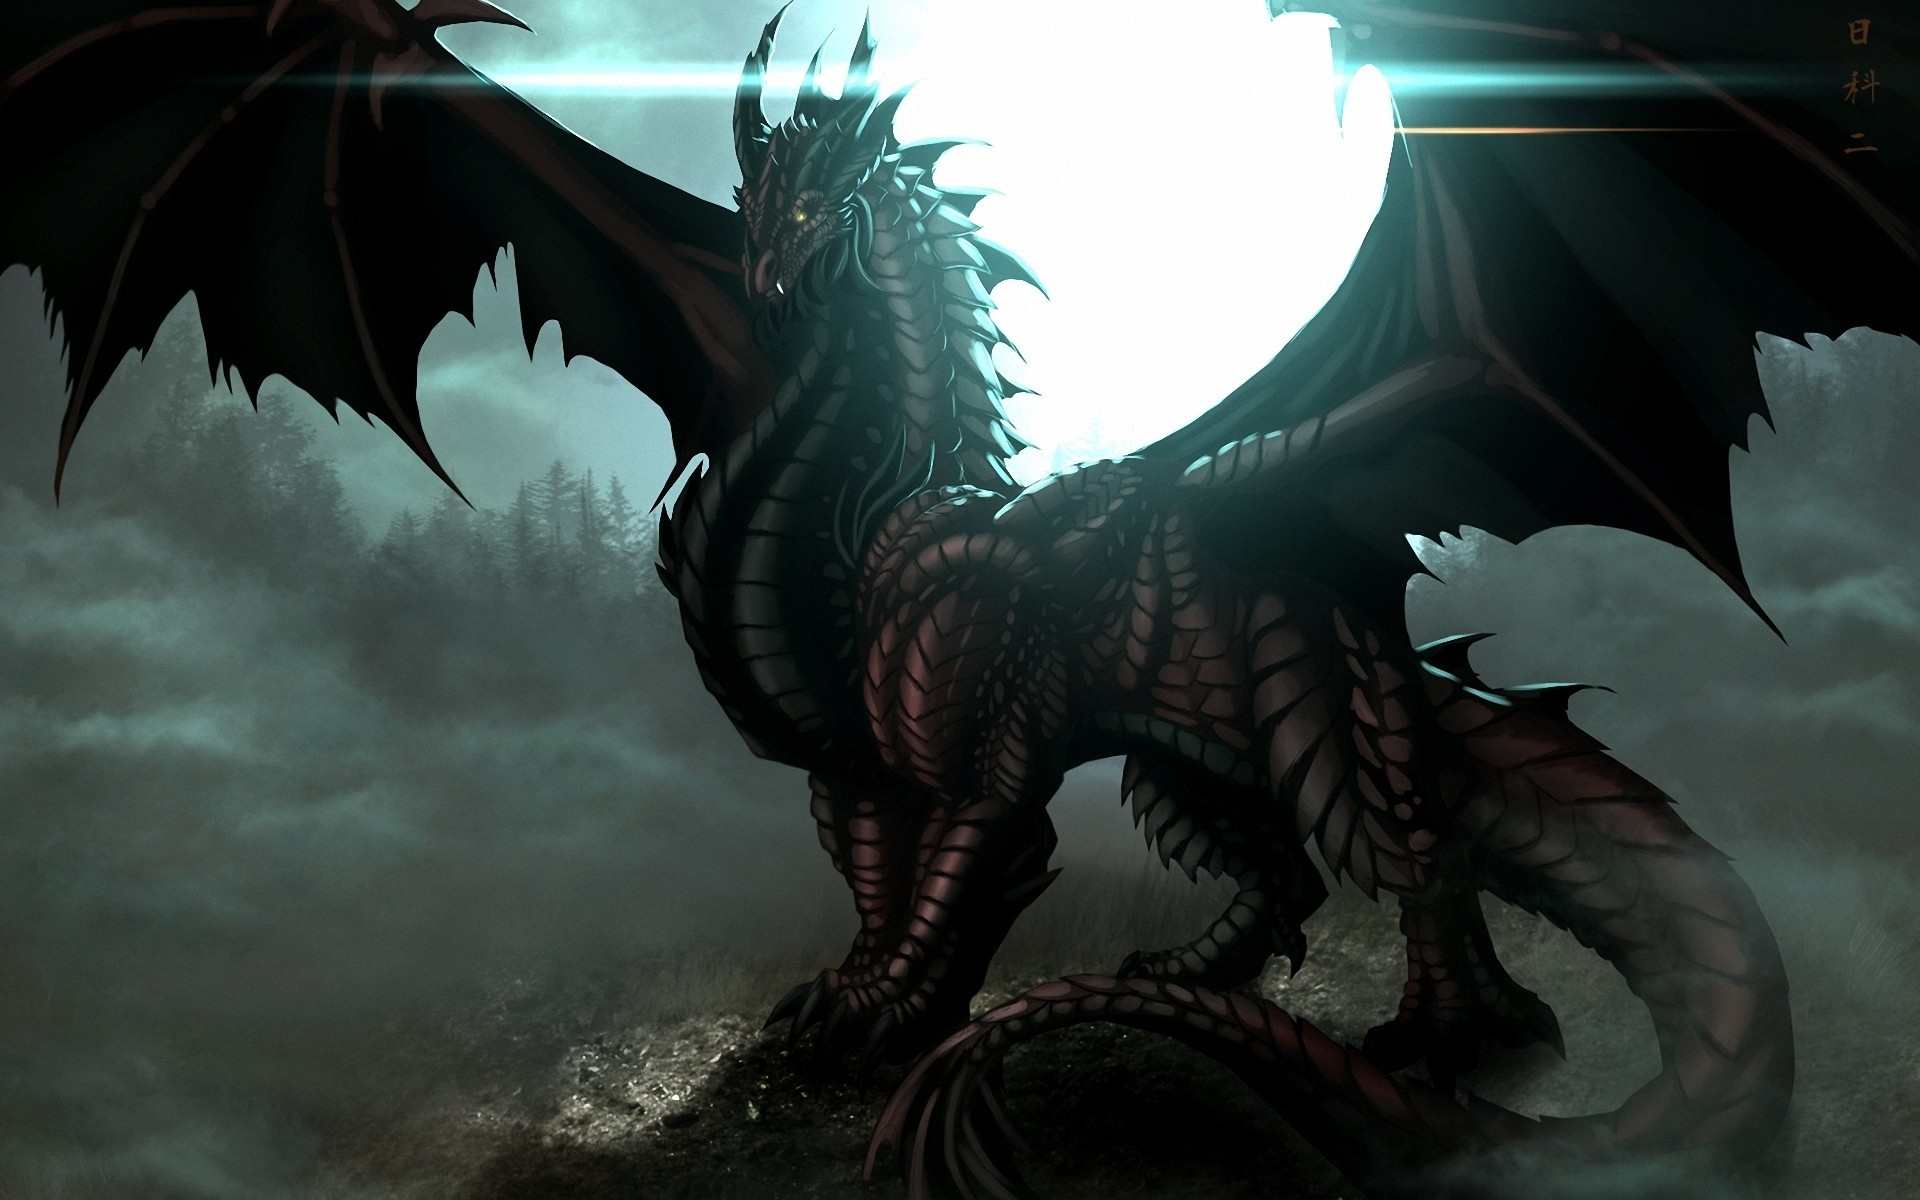 1920x1080 DeviantArt More Like Black Rose Dragon Wallpaper By RJGiel